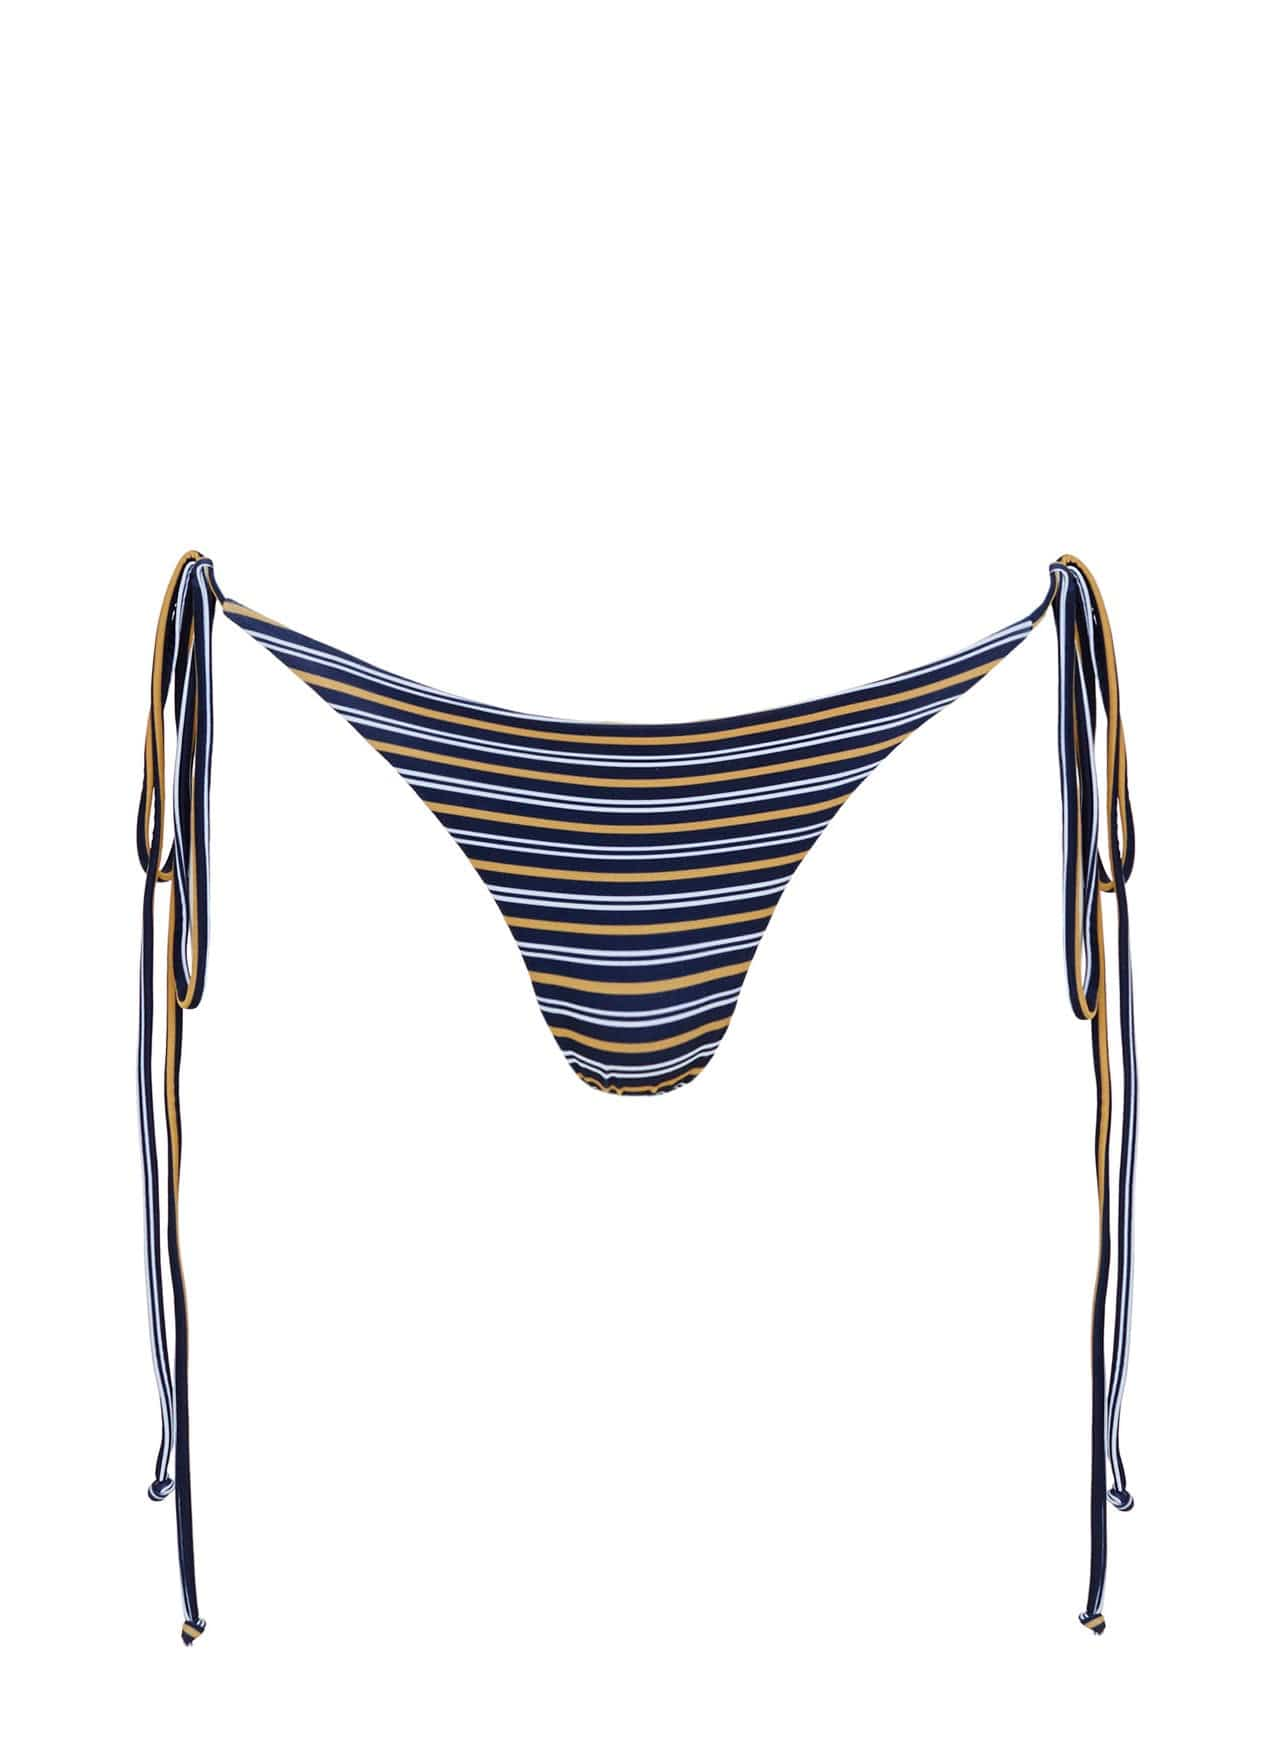 GLASGOW STRIPE PRINT - BREGJE BOTTOM - FINAL SALE